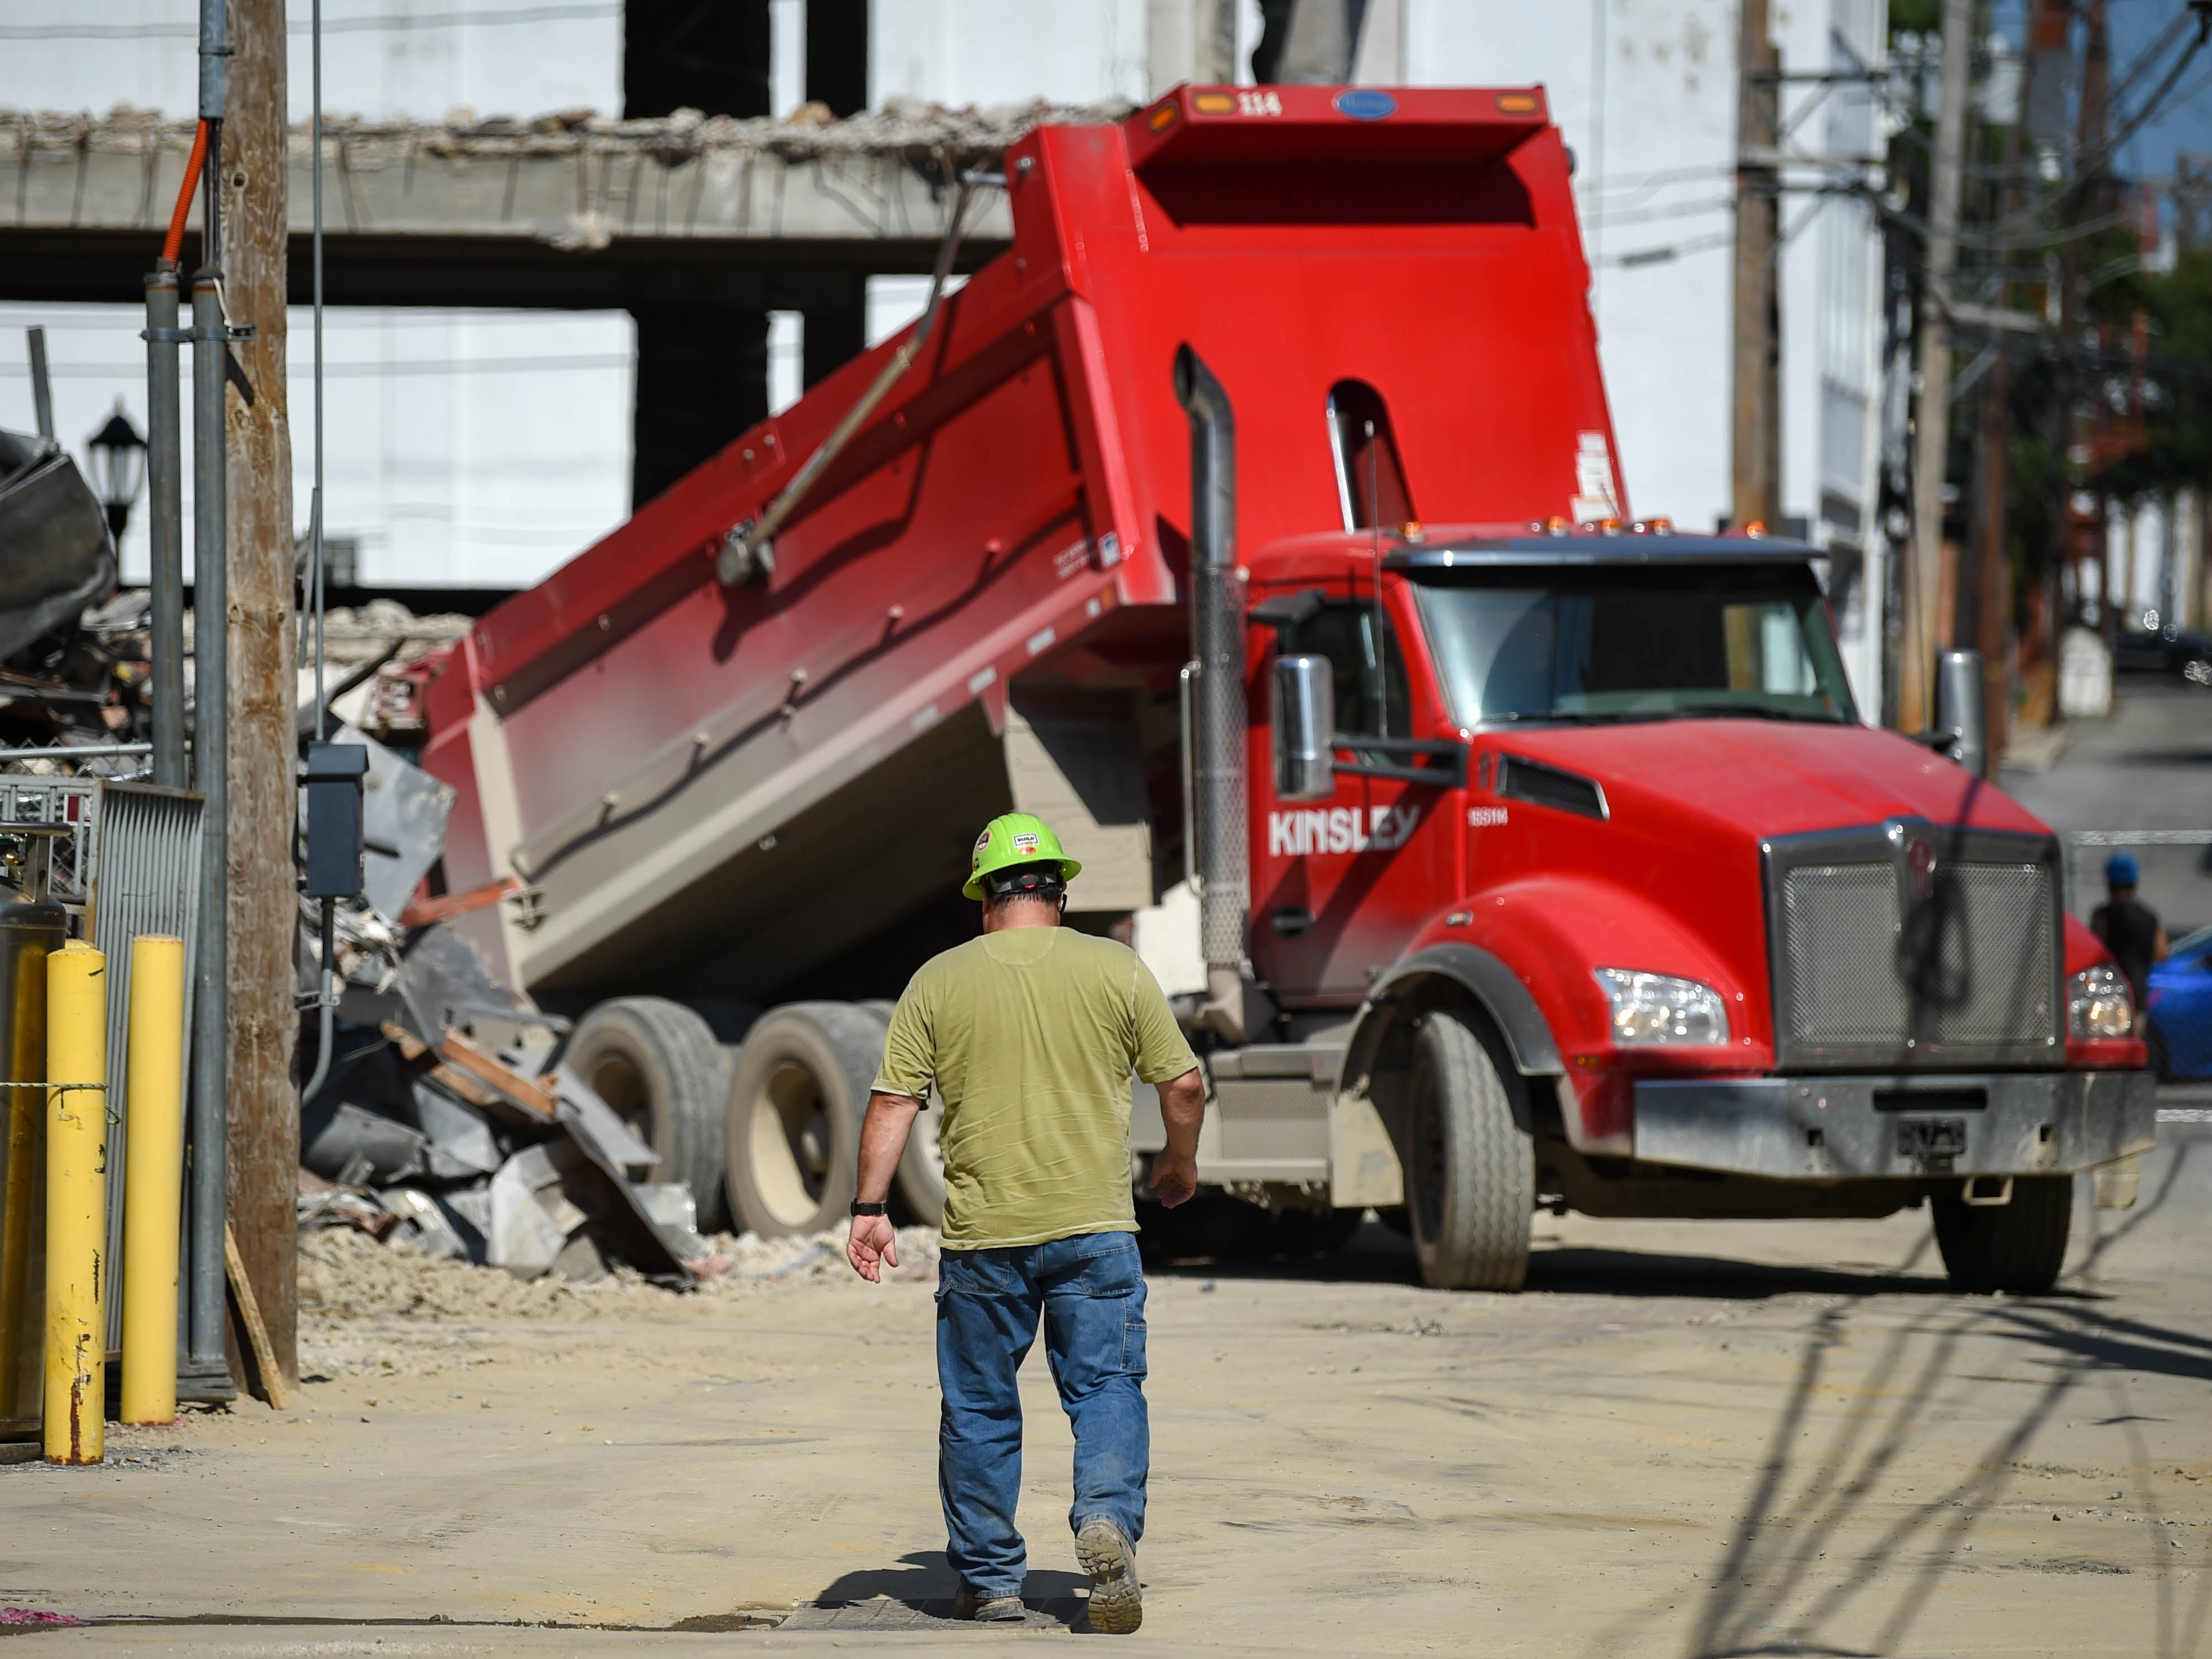 A dump truck drops its load at the Yorktowne Hotel on October 4, 2018.